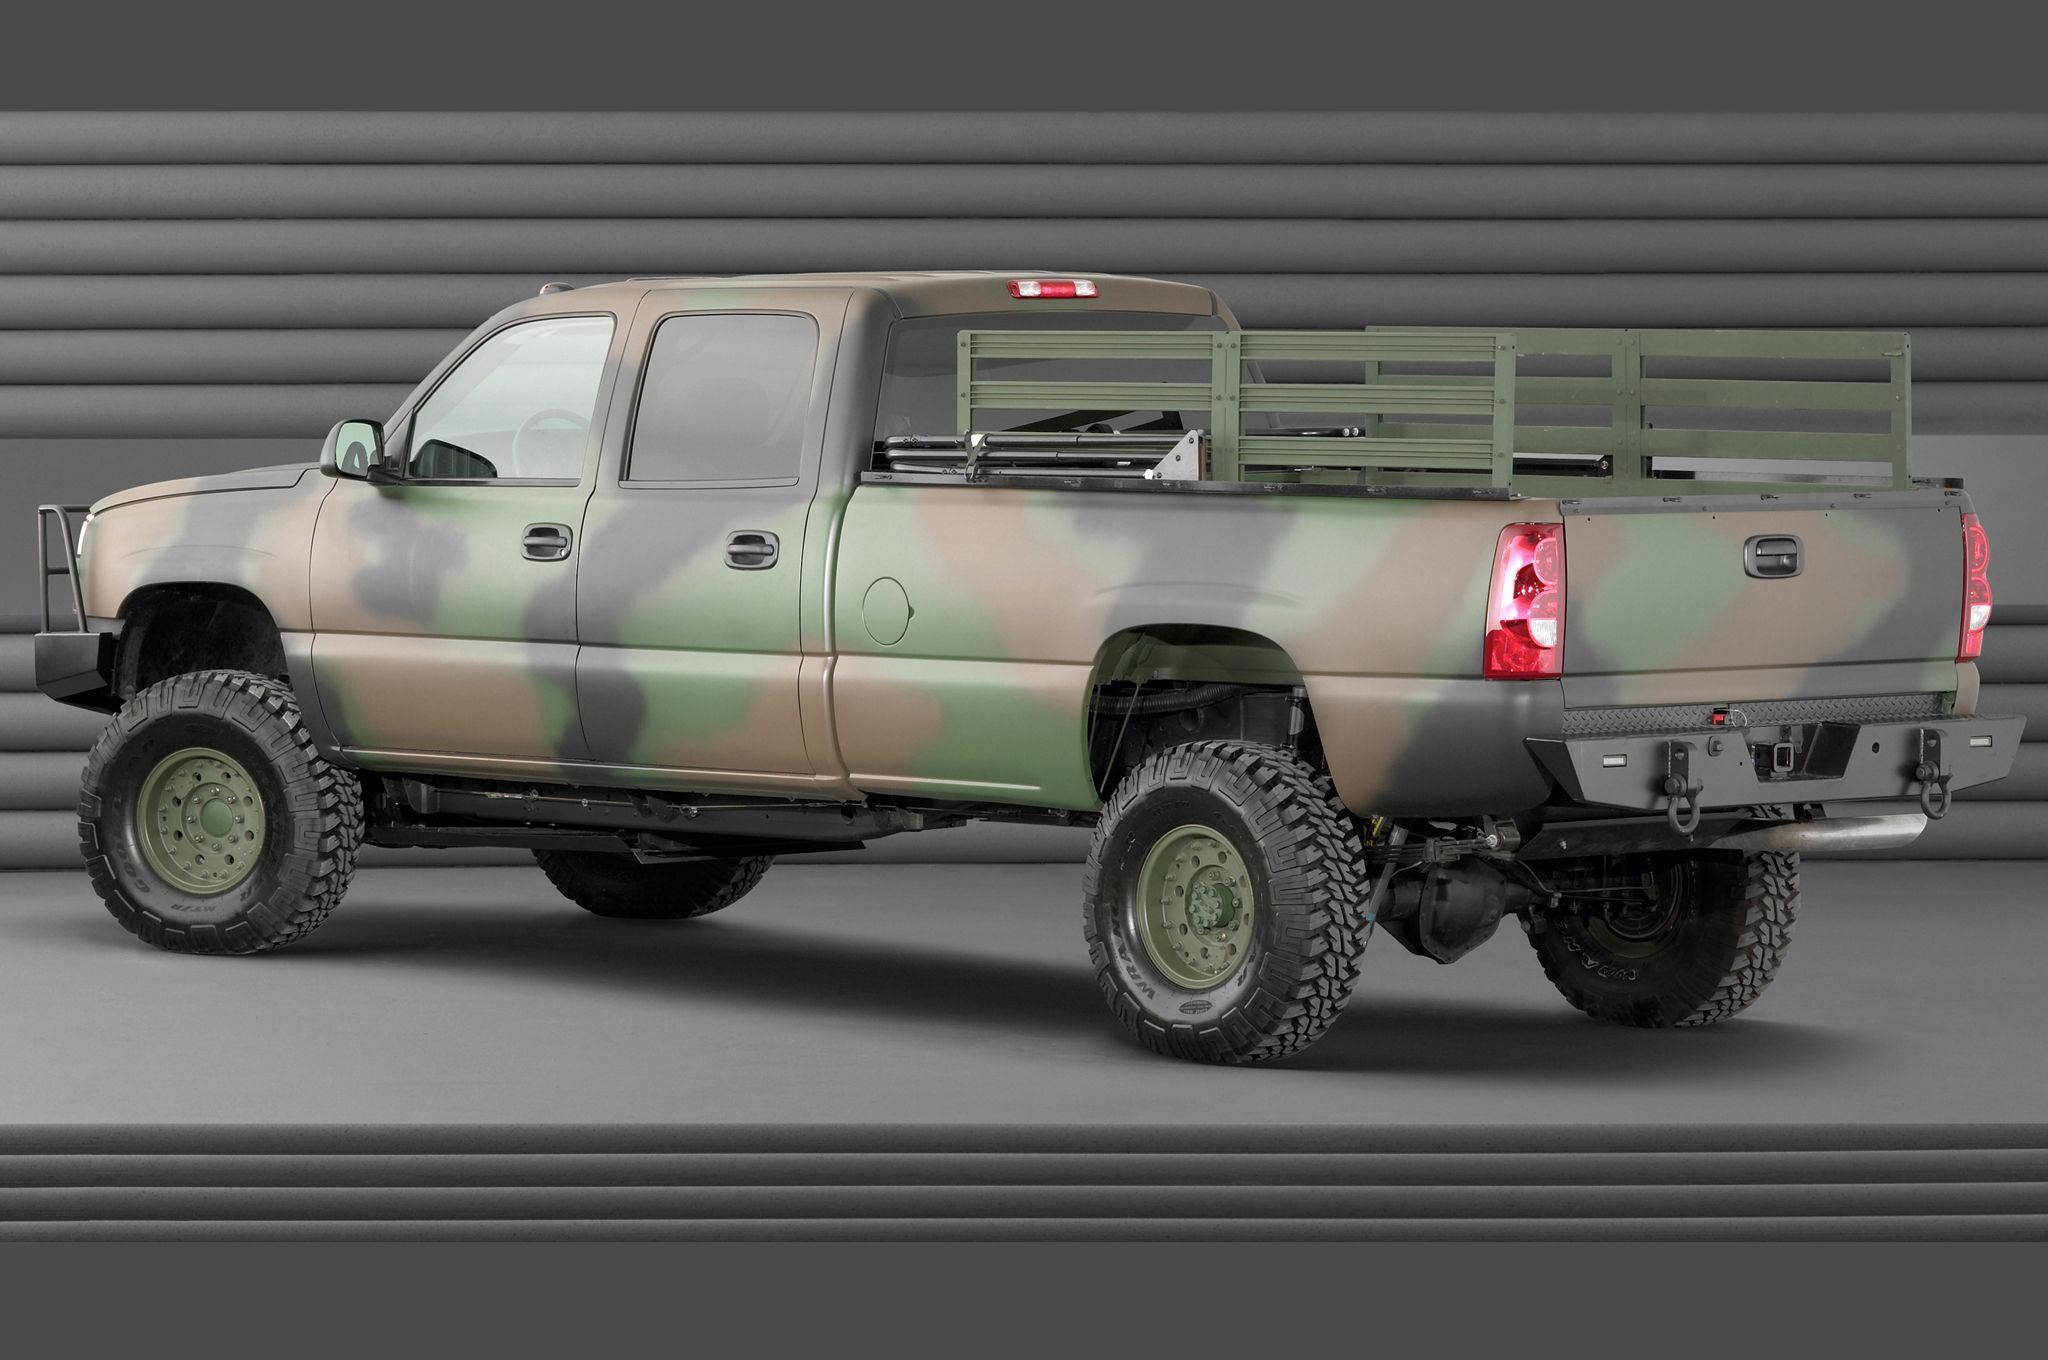 2018 Chevrolet Silverado Hydrogen Military Vehicle photo - 2